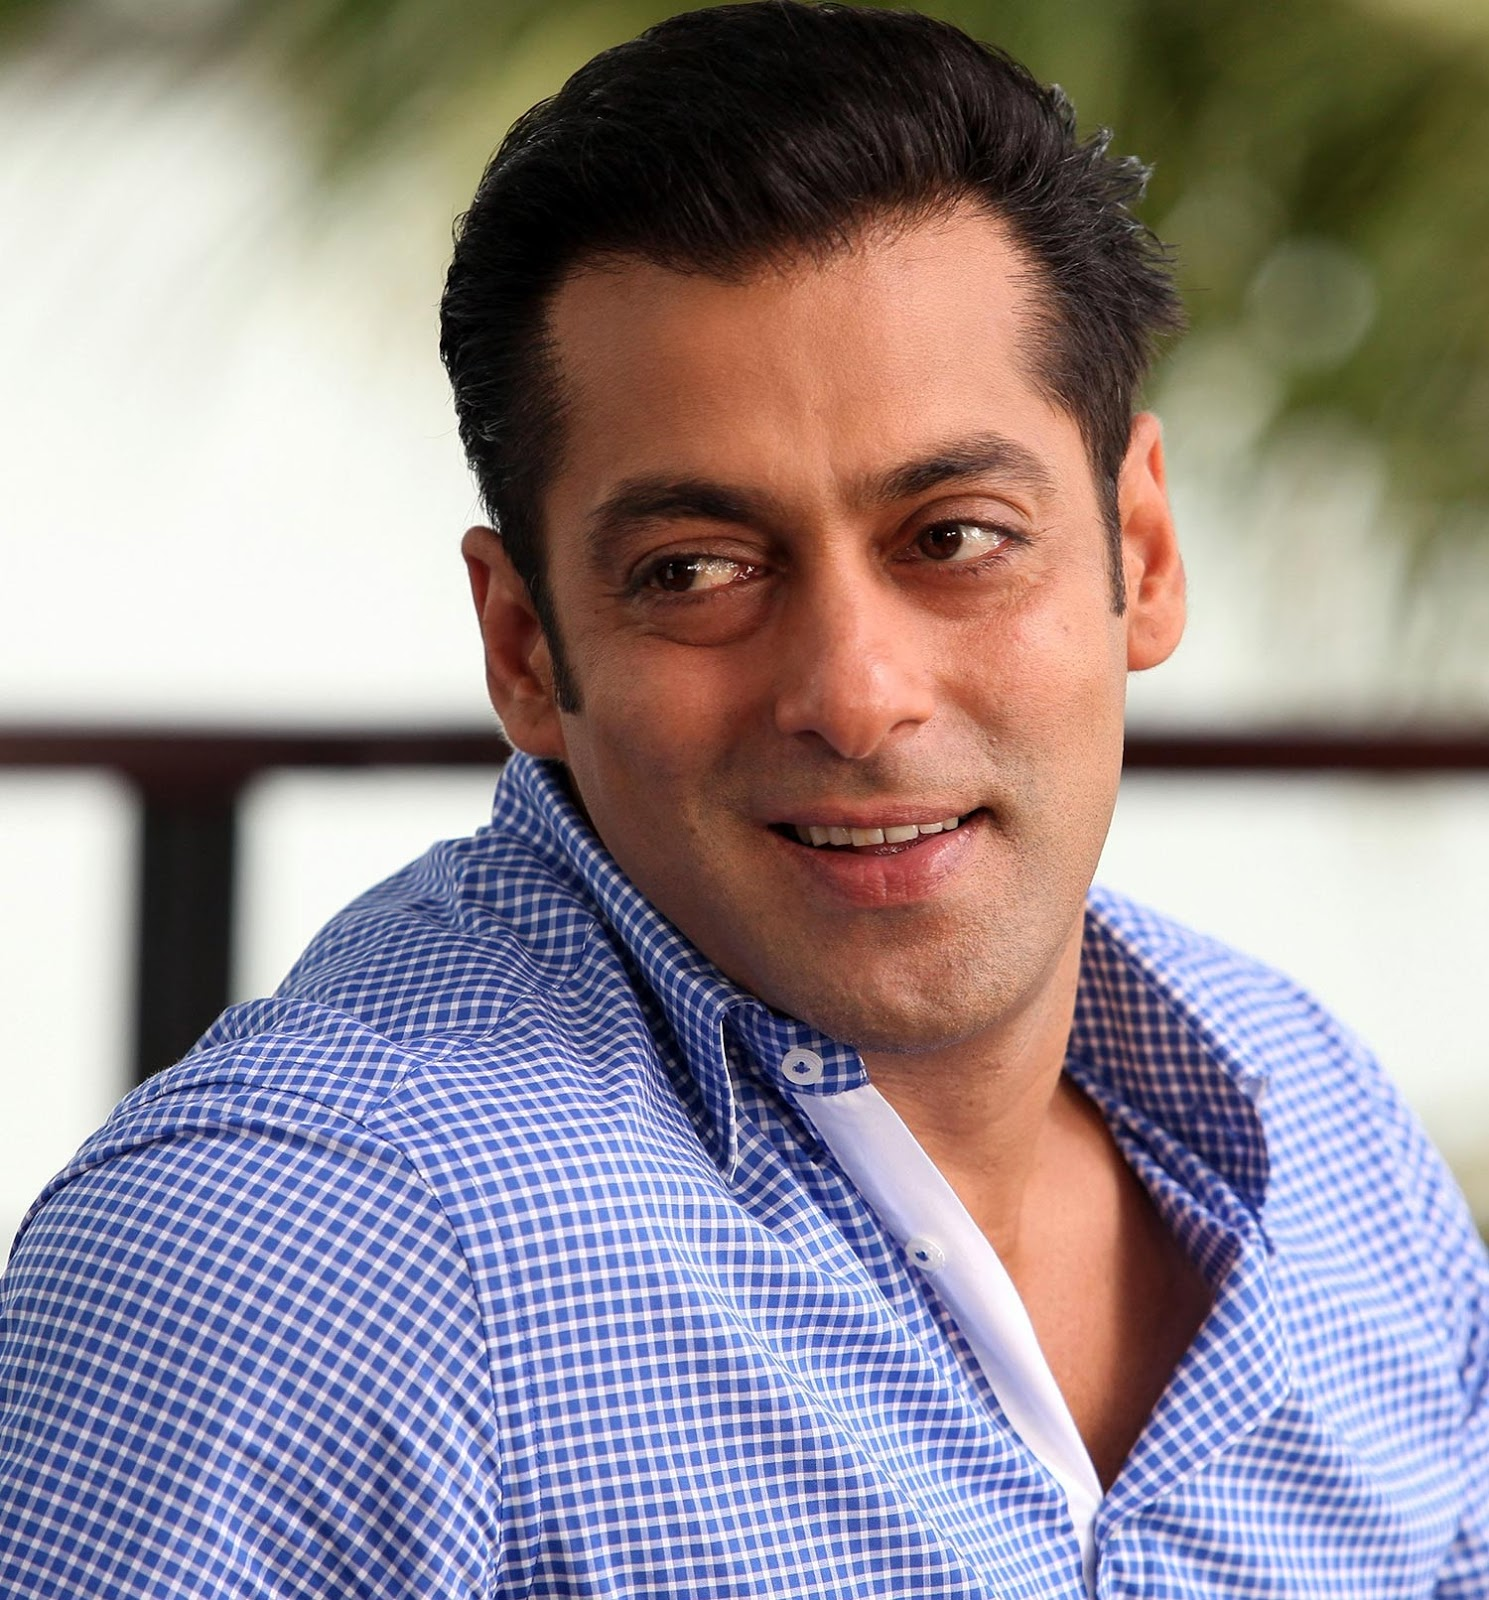 Salman Khan S Tubelight Is A Remake Of A Hollywood Film Bollywood